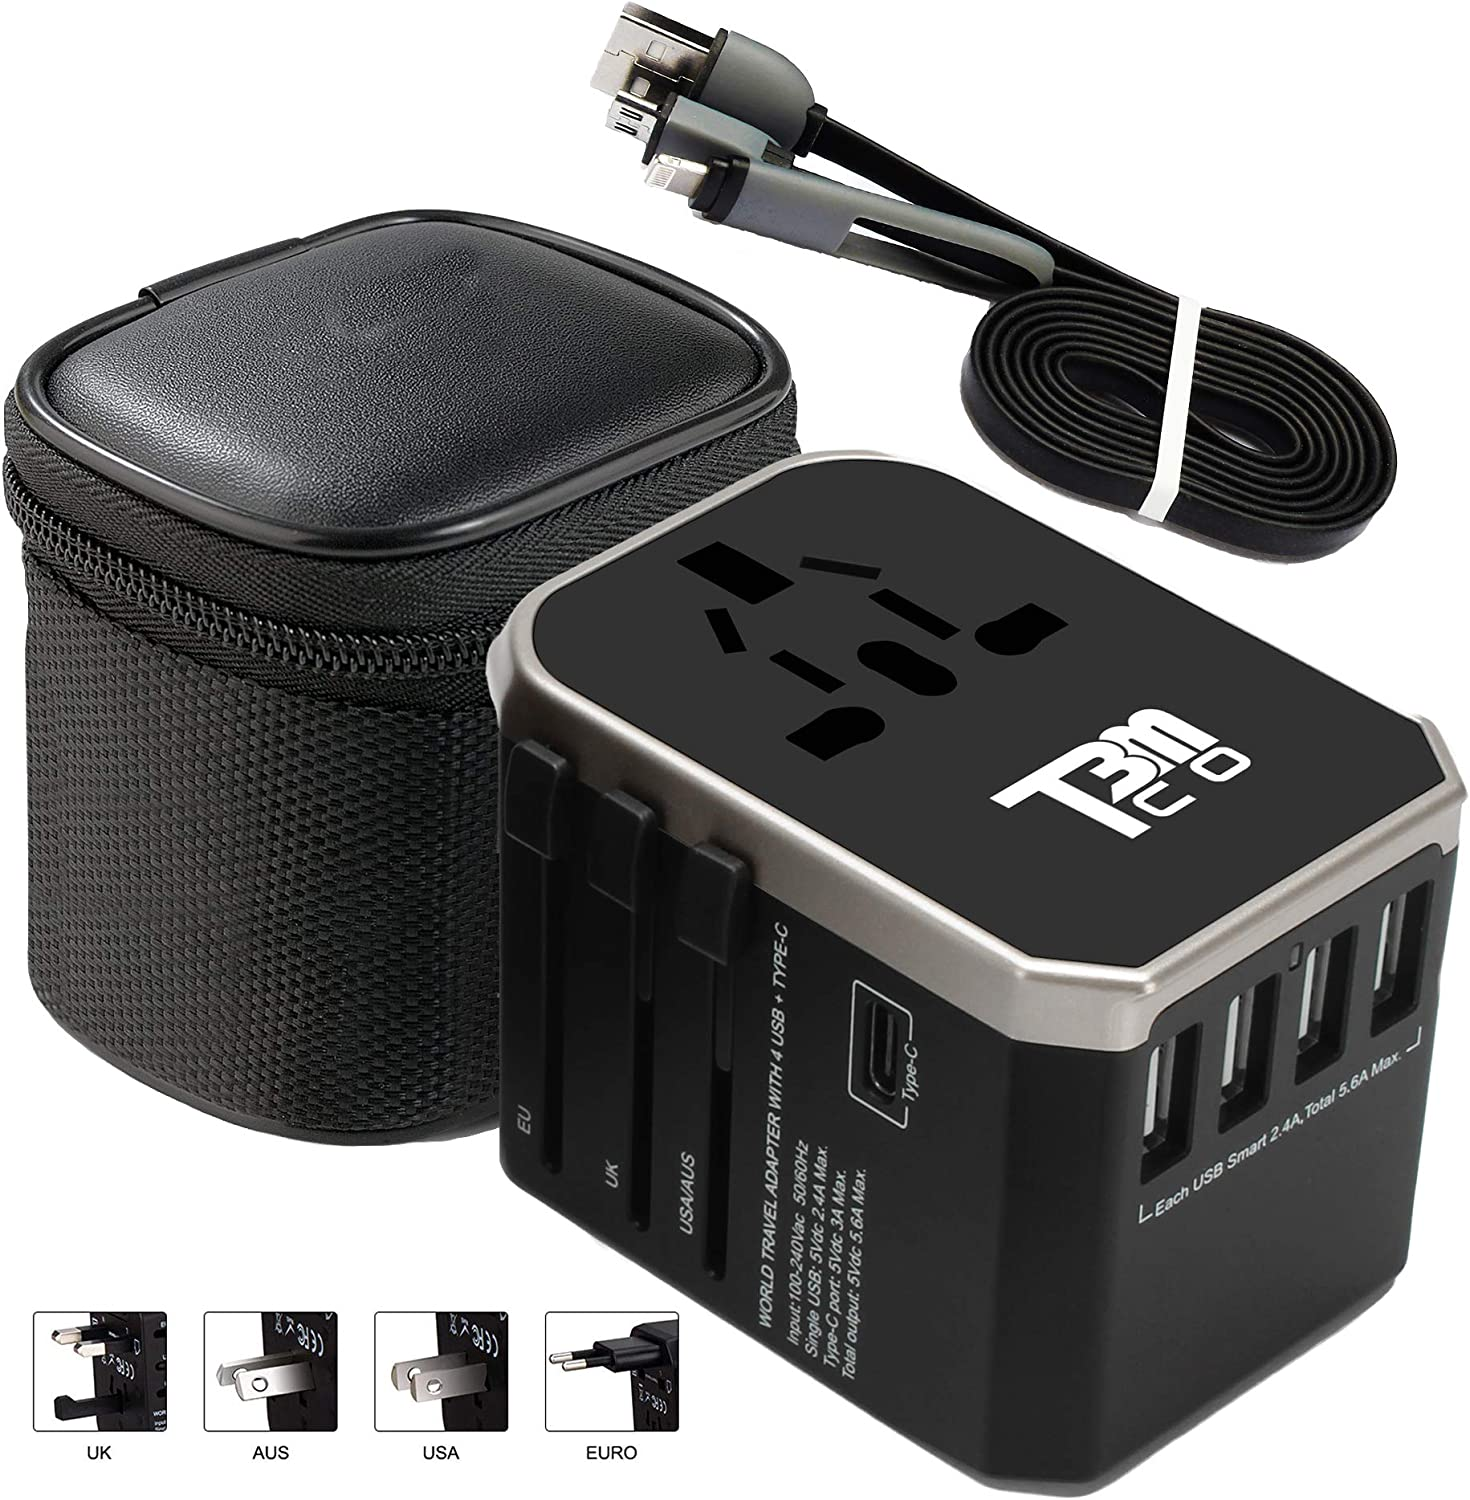 T3MCO Travel Adapter - UK to Europe - USA AUS EU UK Adaptor - Universal - Use Internationally - 5 Colors with Carry Case and Charging Cable for iPhones and Andriod - Ideal for Your Next Trip Abroad